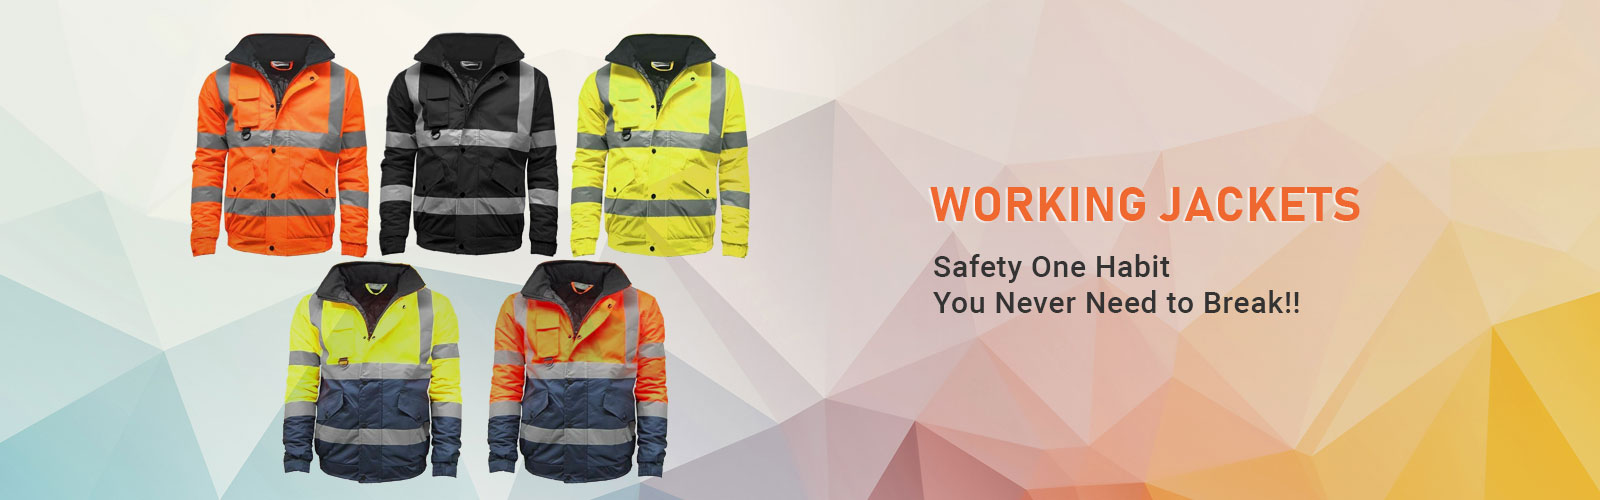 Working Jackets